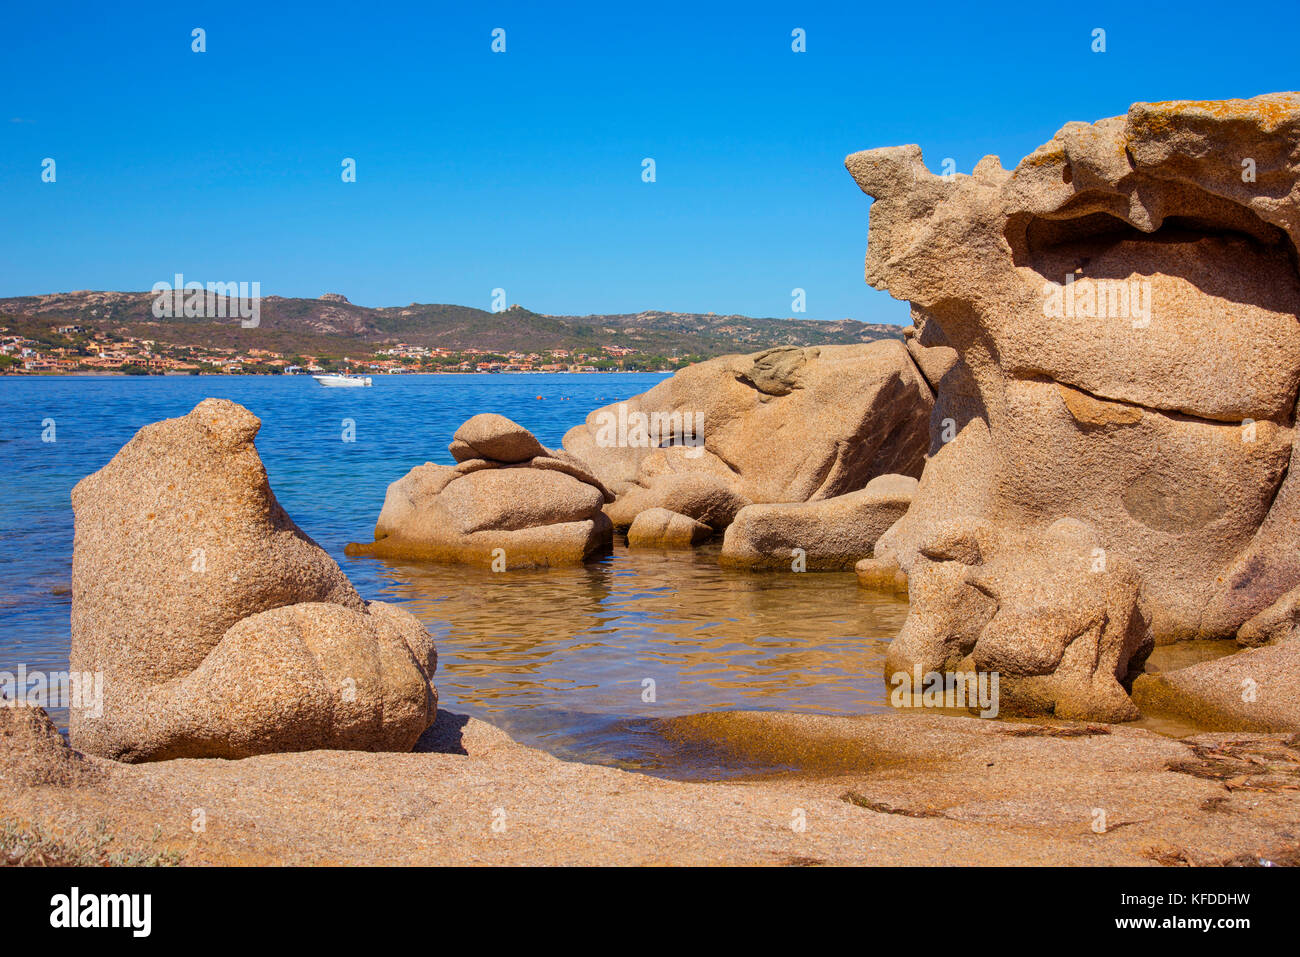 a view of the particular rock formations in Cala Ginepro beach in the Costa Smeralda, Sardinia, Italy - Stock Image